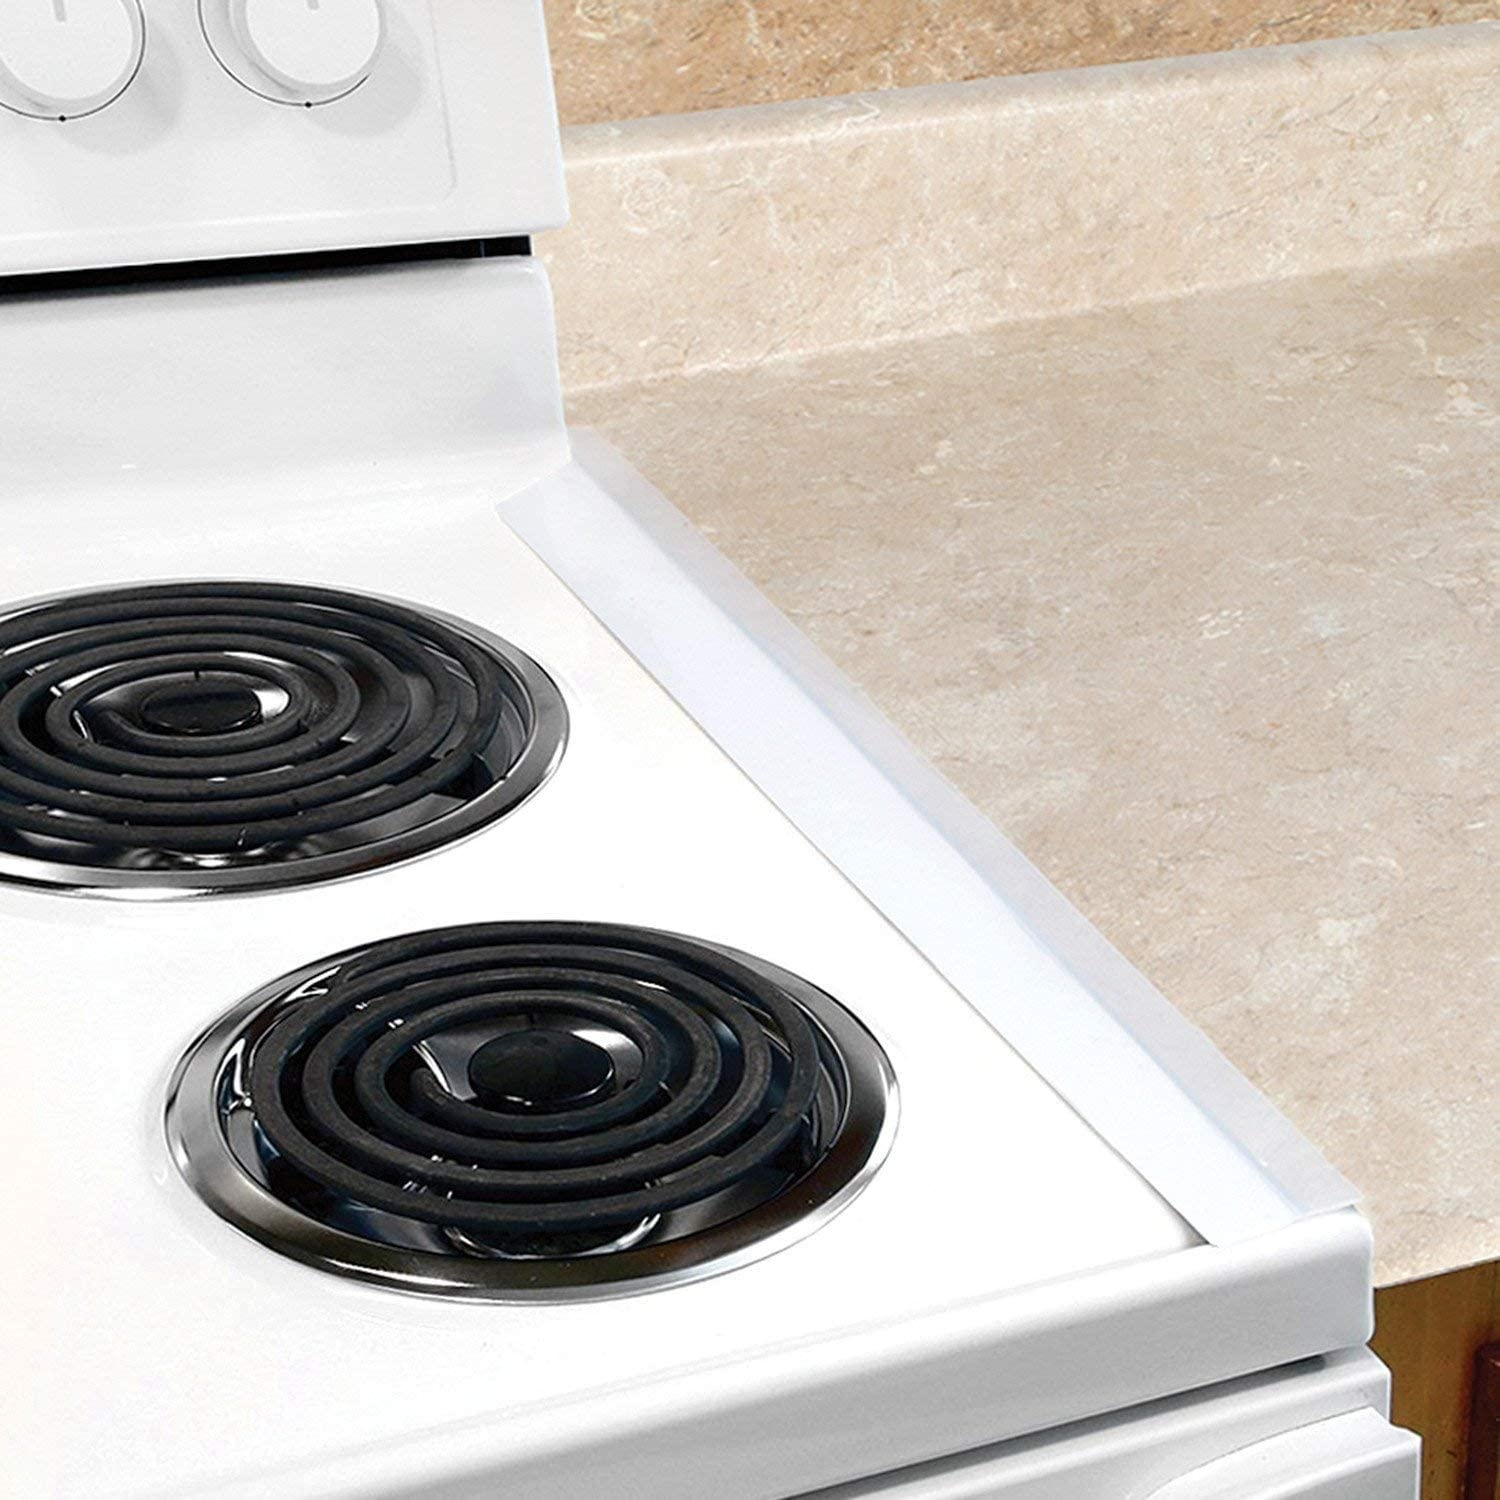 Trenton Gifts Clear Silicone Spill Guard | No More Crumbs or Spill Between Stove & Counter Top | Black